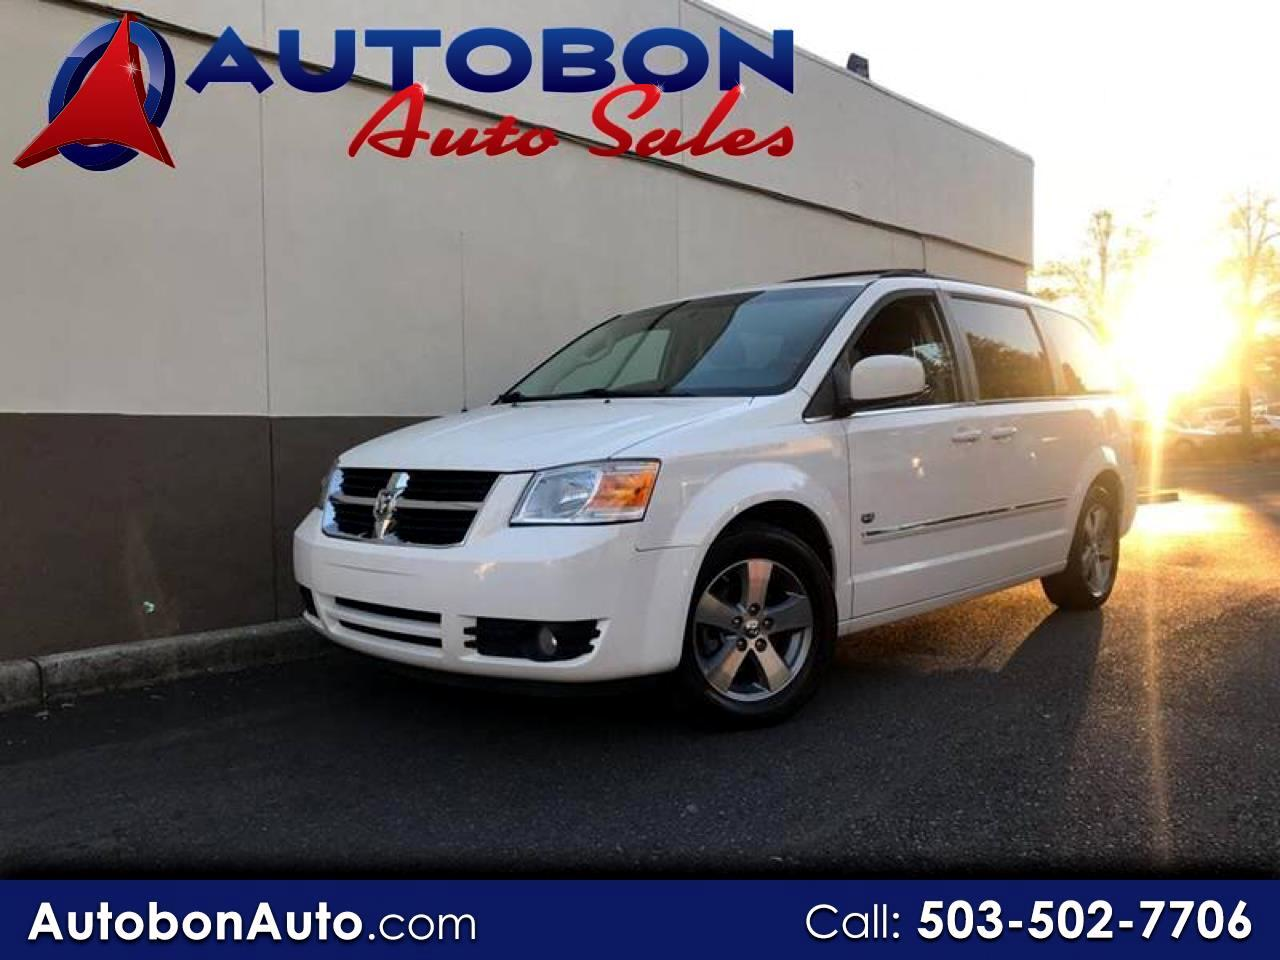 2009 Dodge Grand Caravan 4dr Wgn SXT